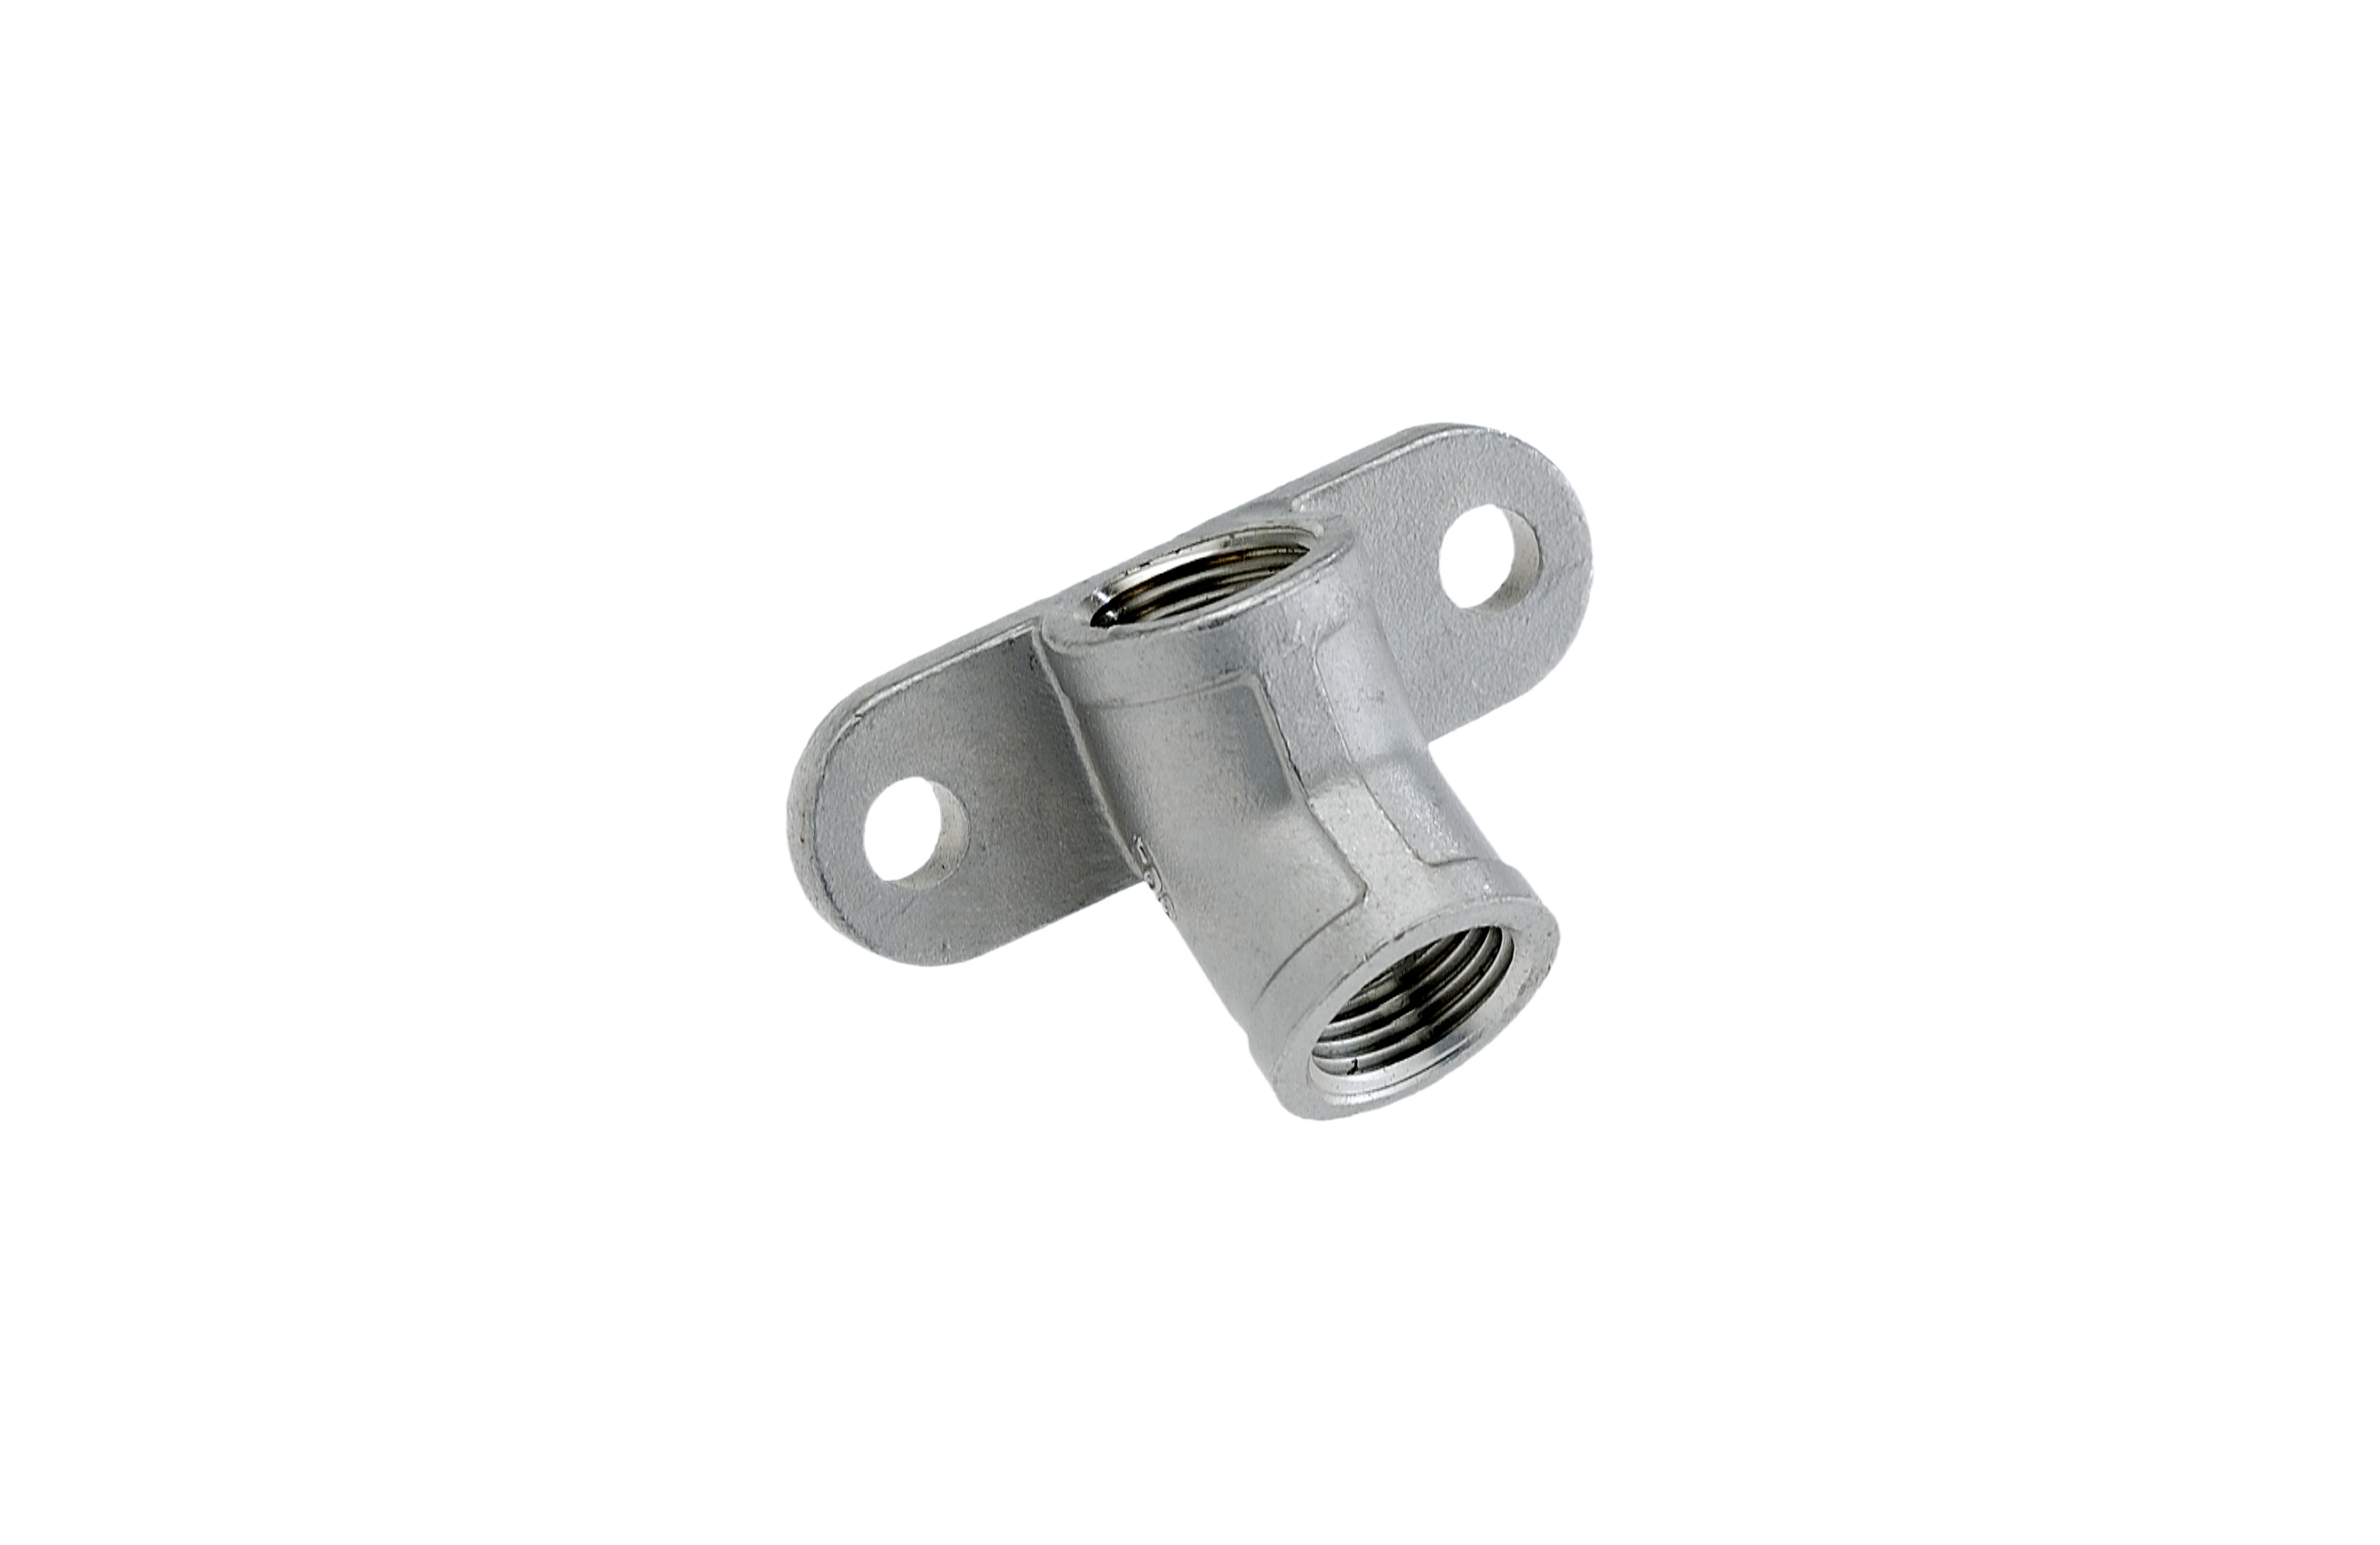 Supporto inox 1/2″ filetto conico – Codice 126 C